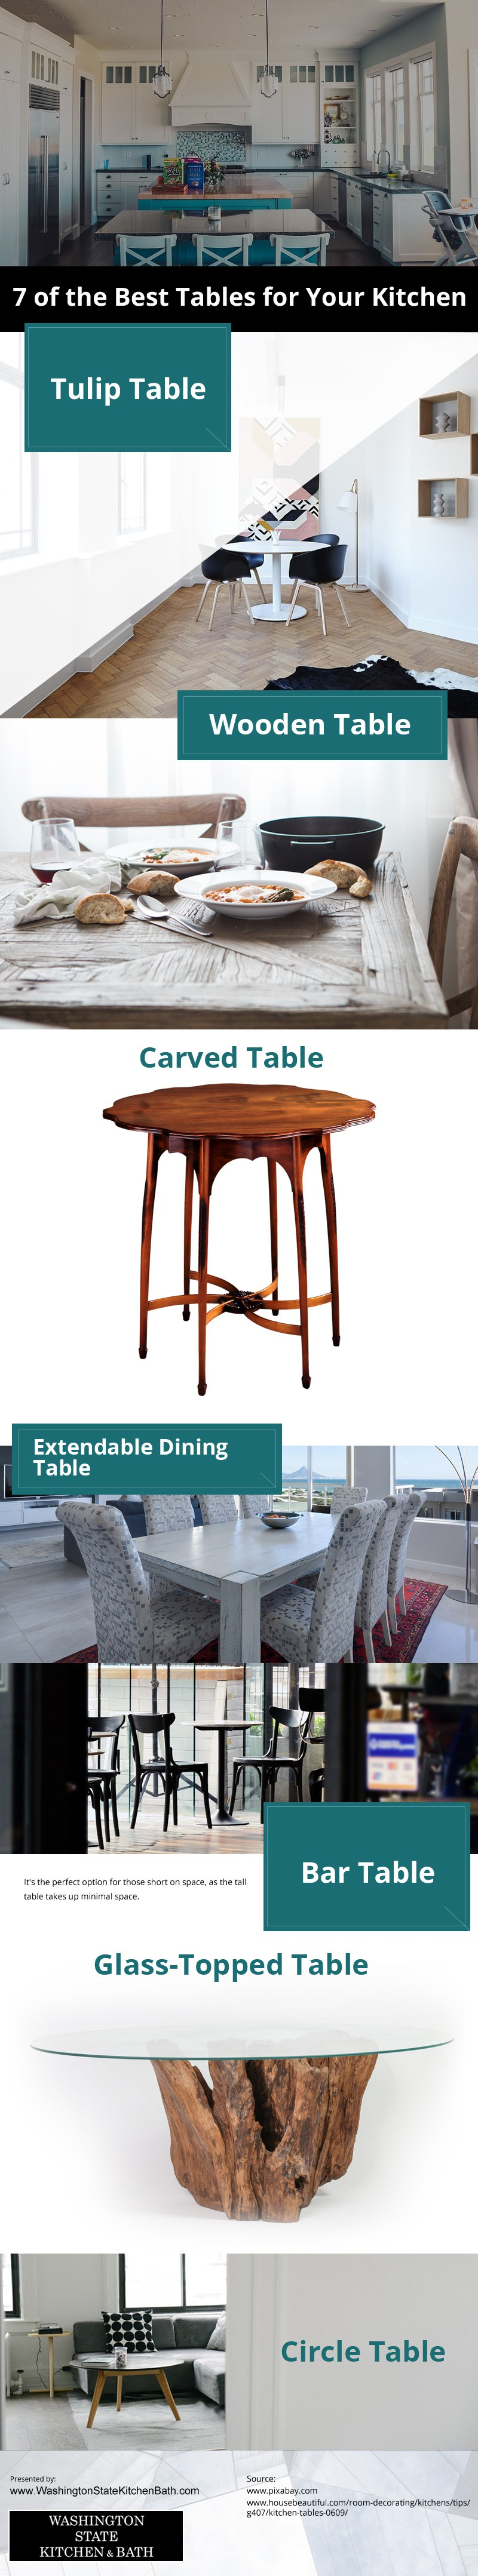 7 of the Best Tables for your Kitchen